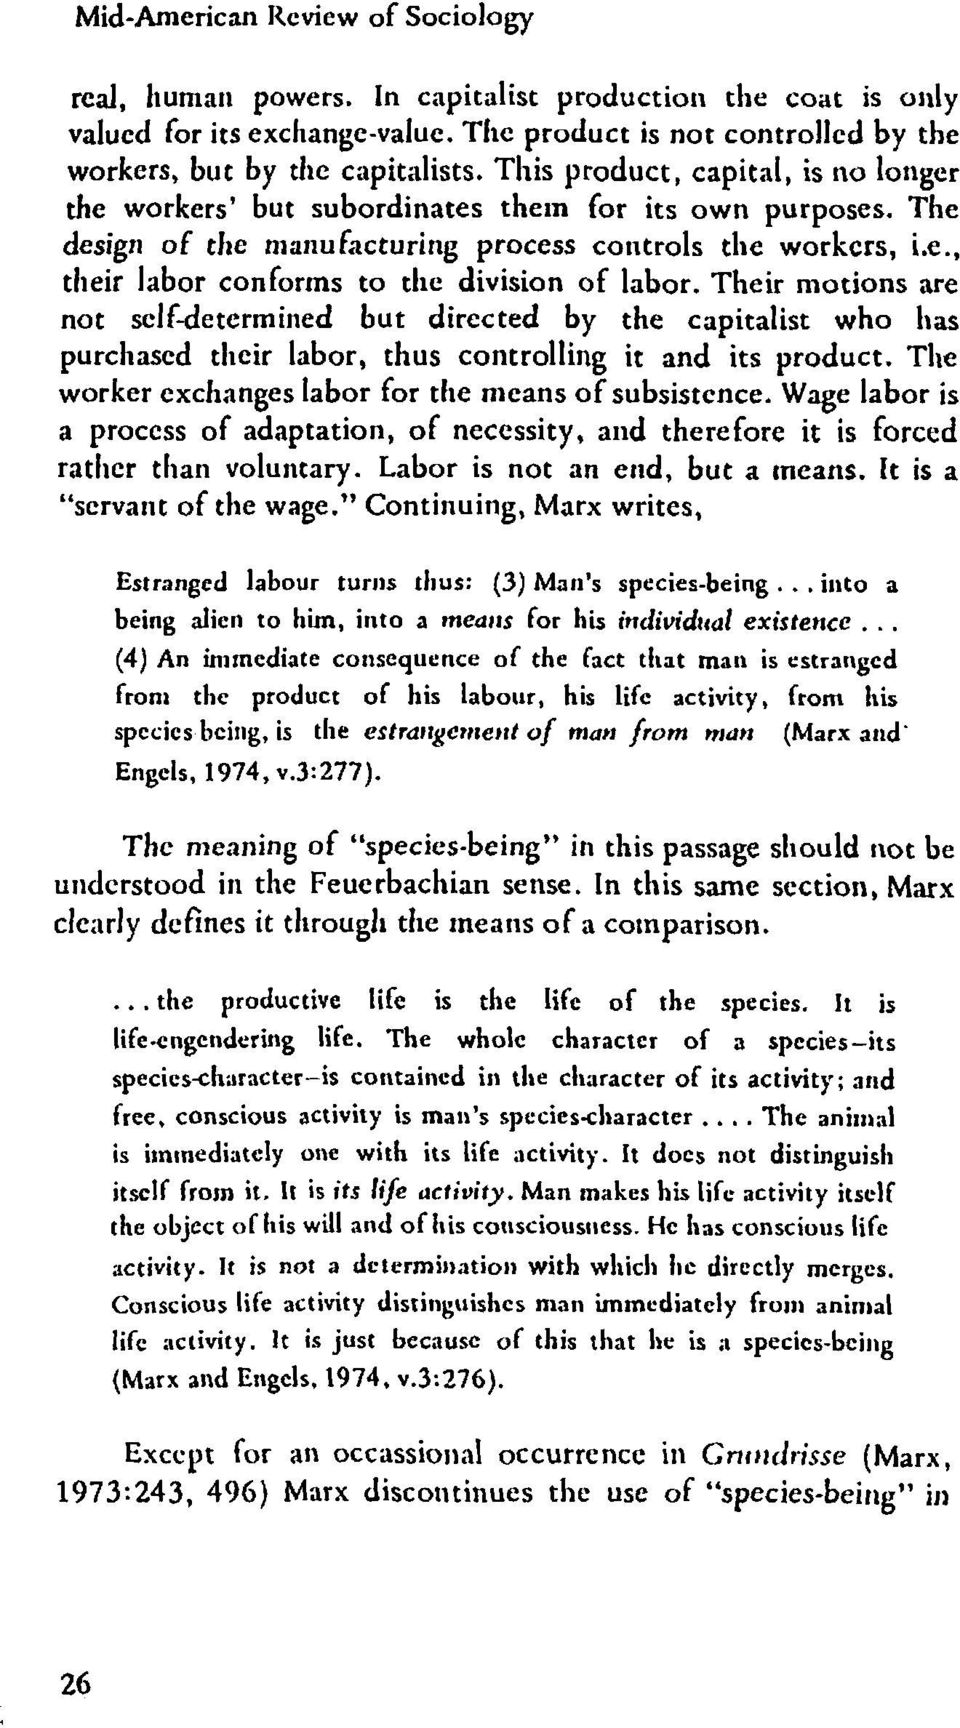 an introduction to marxs notion of man as a species being and alienation Emancipation and the limits of marxs cosmopolitan imaginary  and species-being in the so-called transitional  alienation: marx's conception of man in.